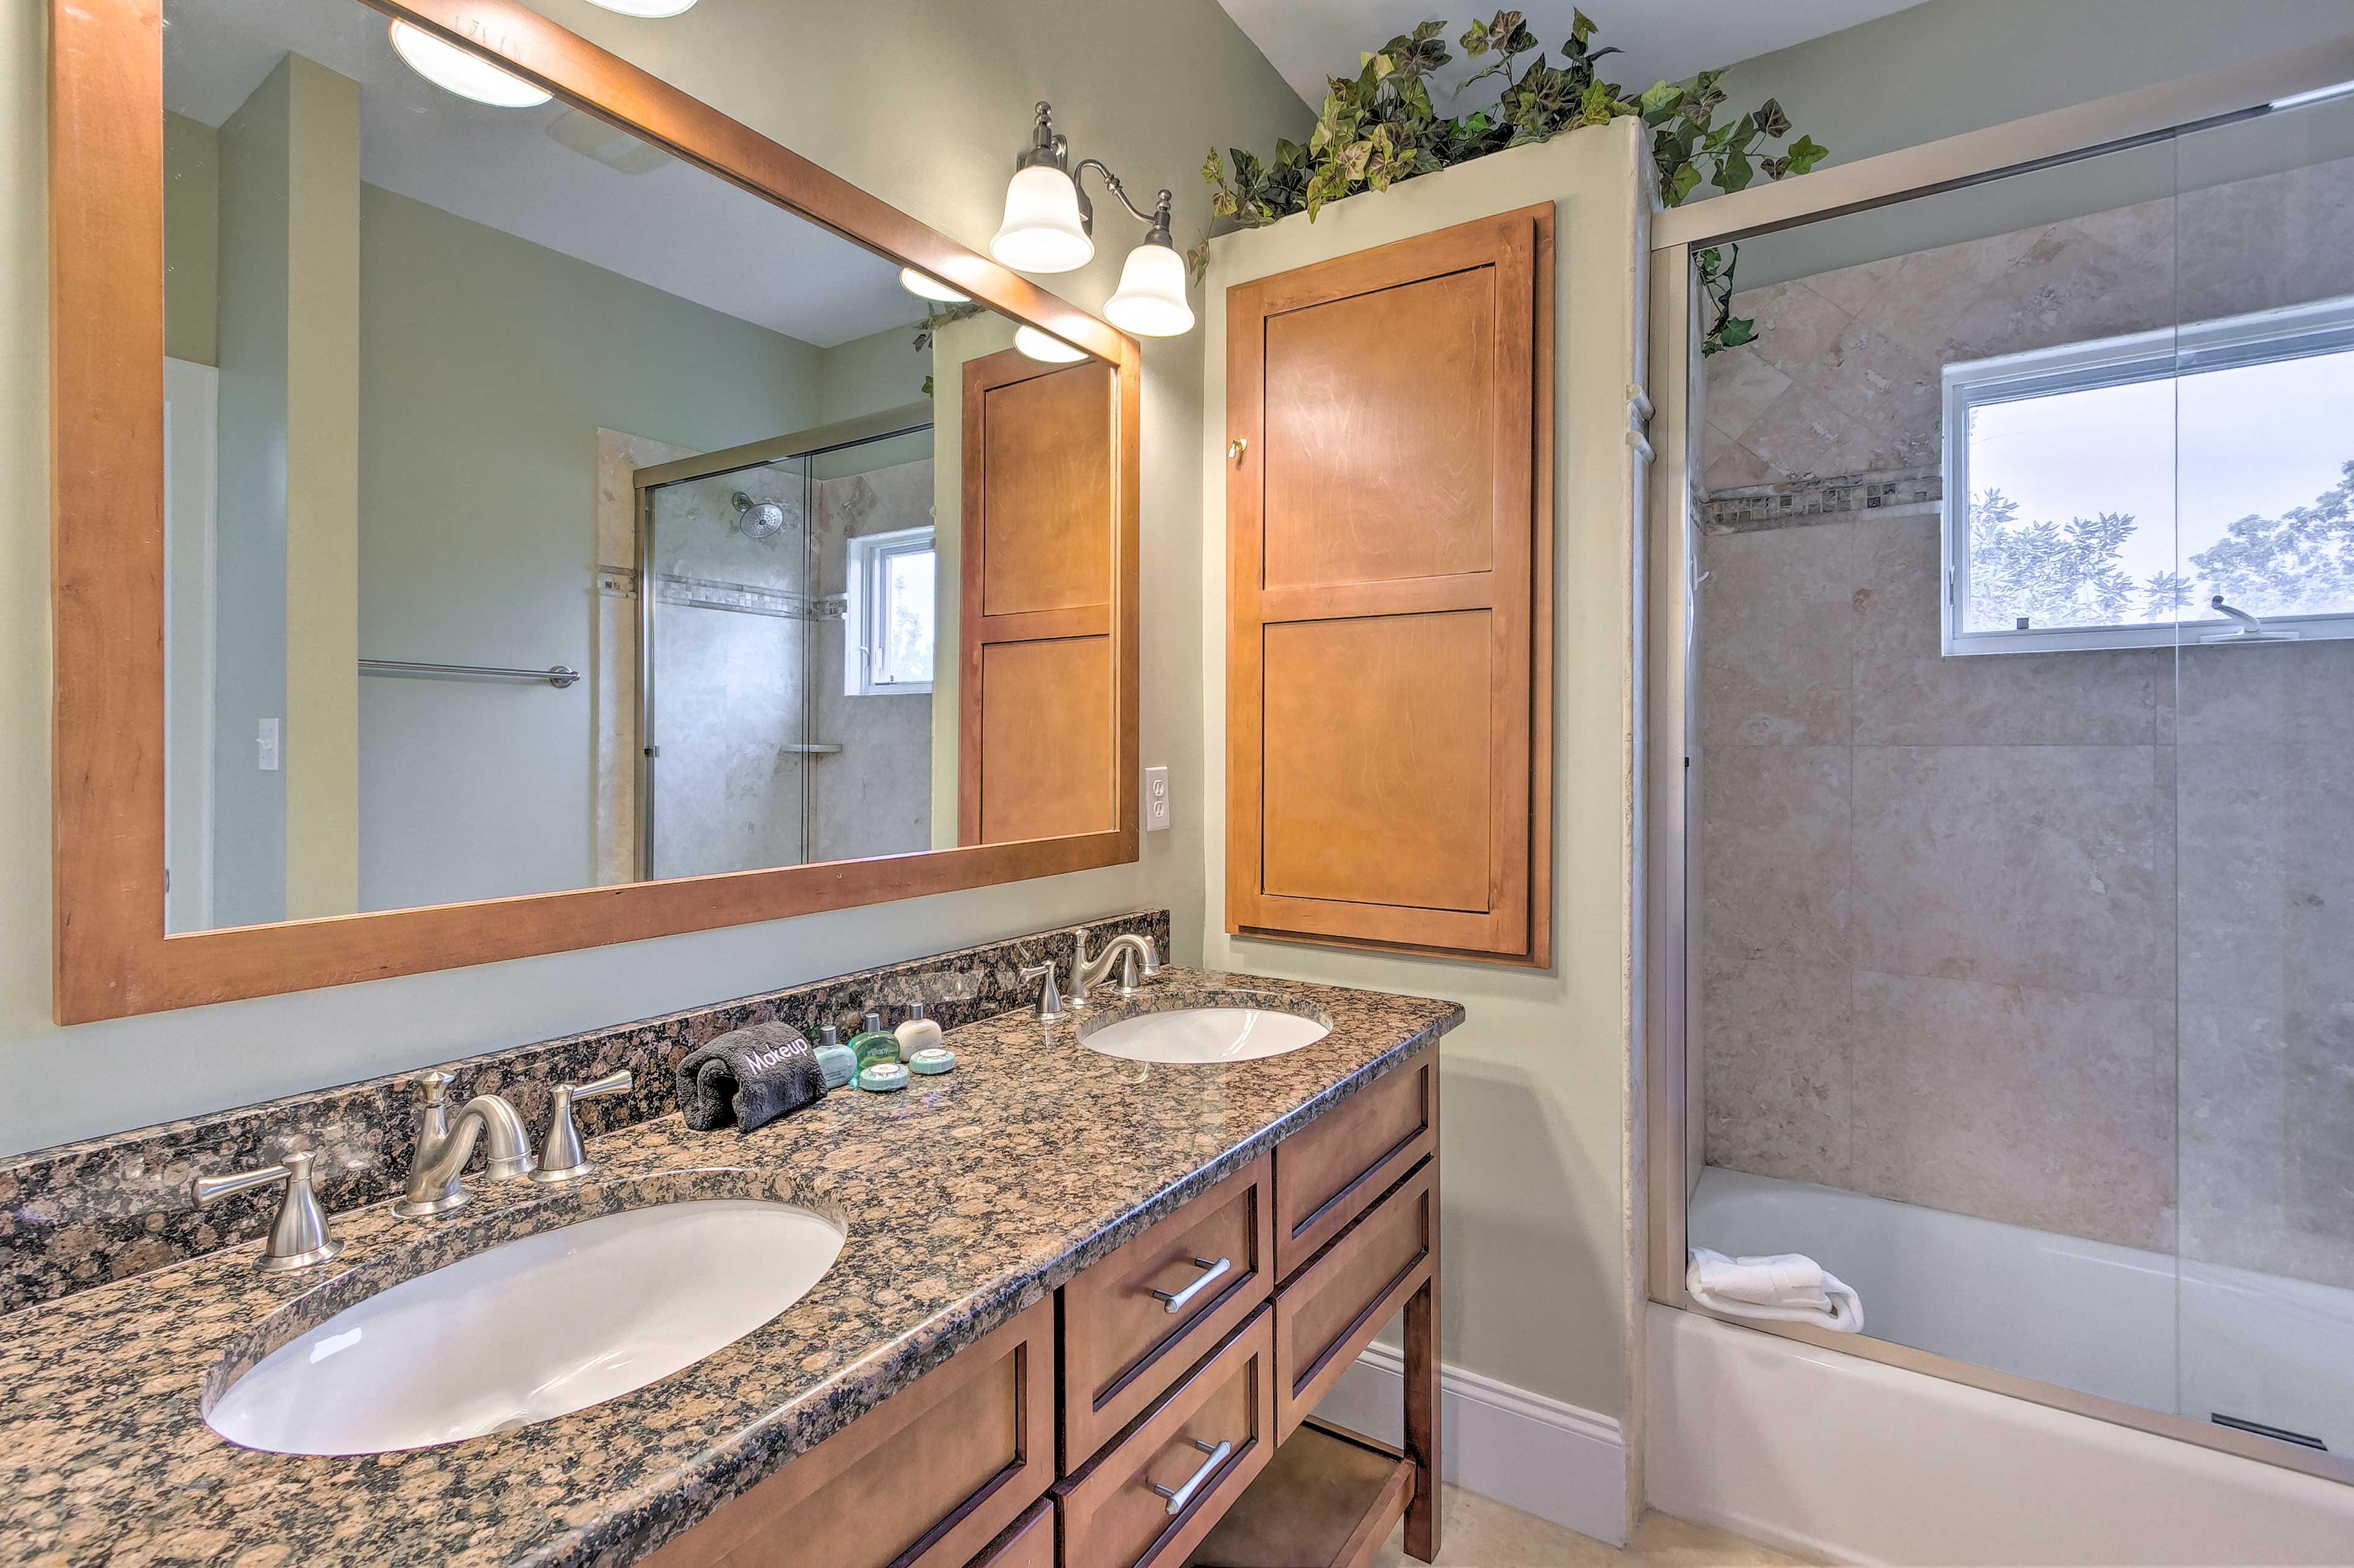 Dual sinks provide plenty of space to get ready for the night.